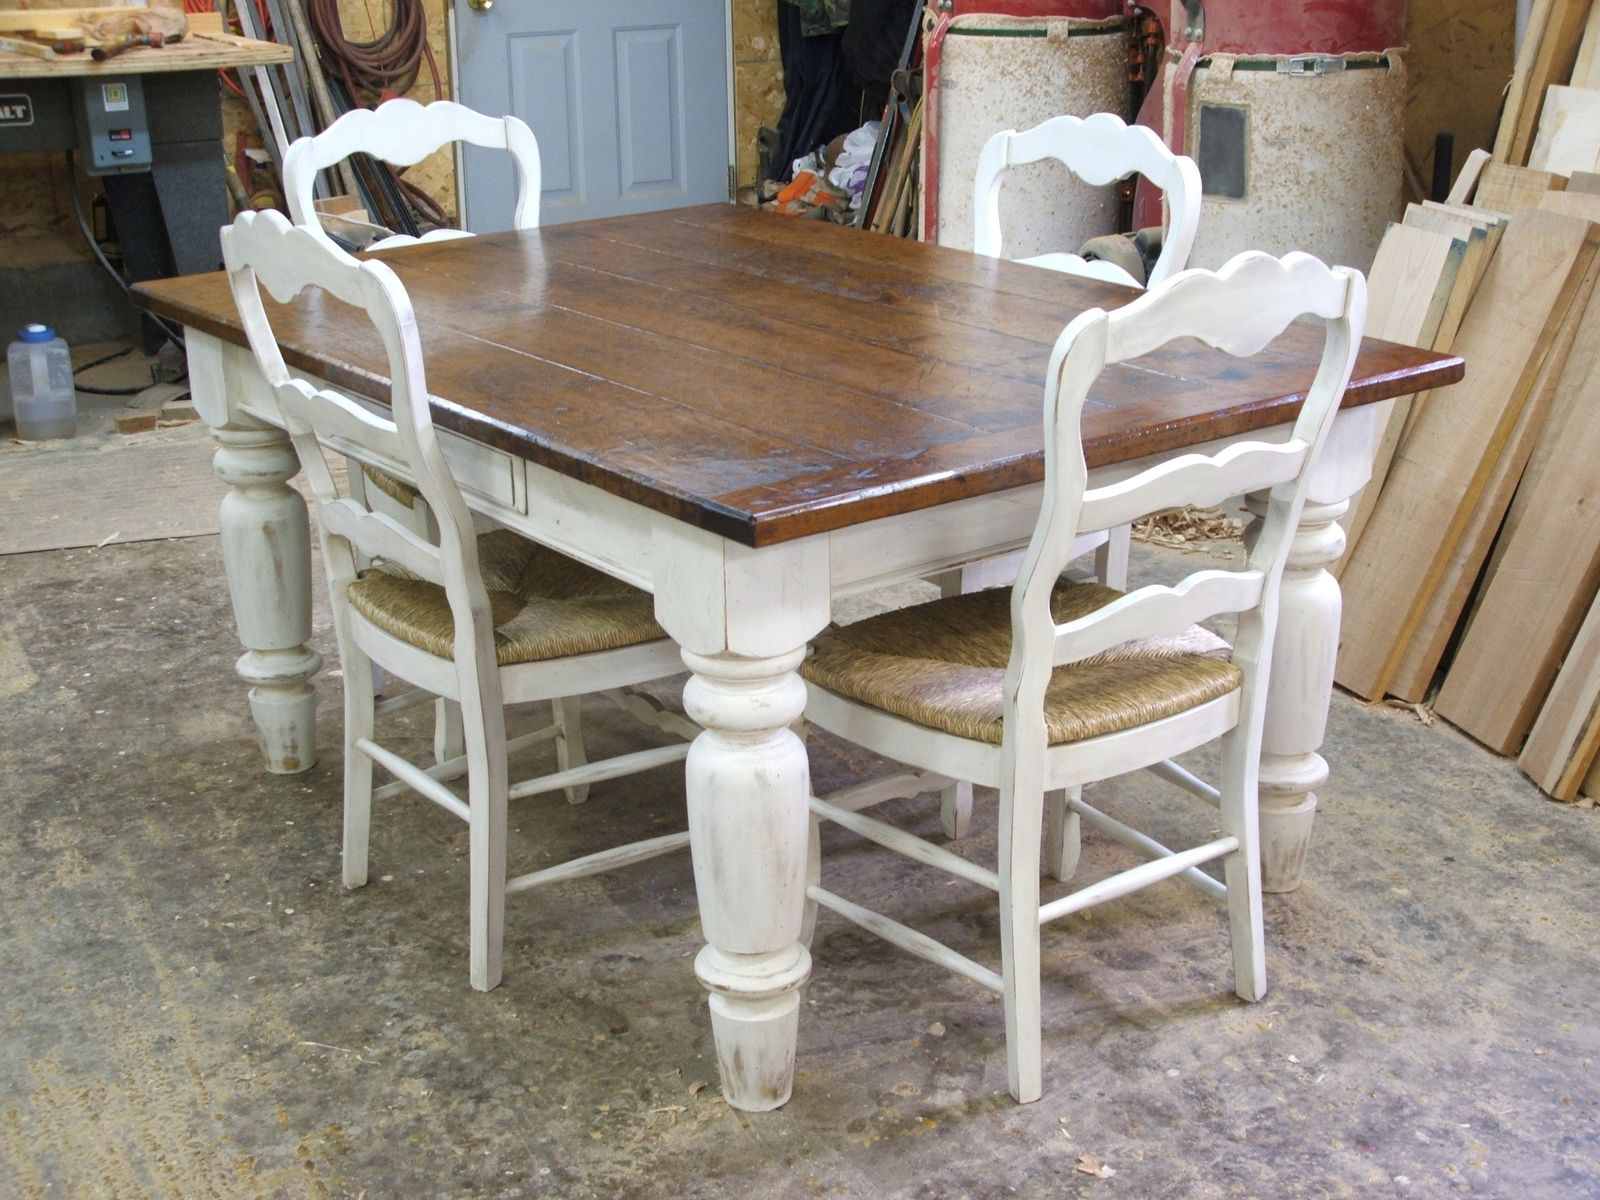 timber white white distressed kitchen table 88 best images about Timber White on Pinterest Dining sets White dining set and The white